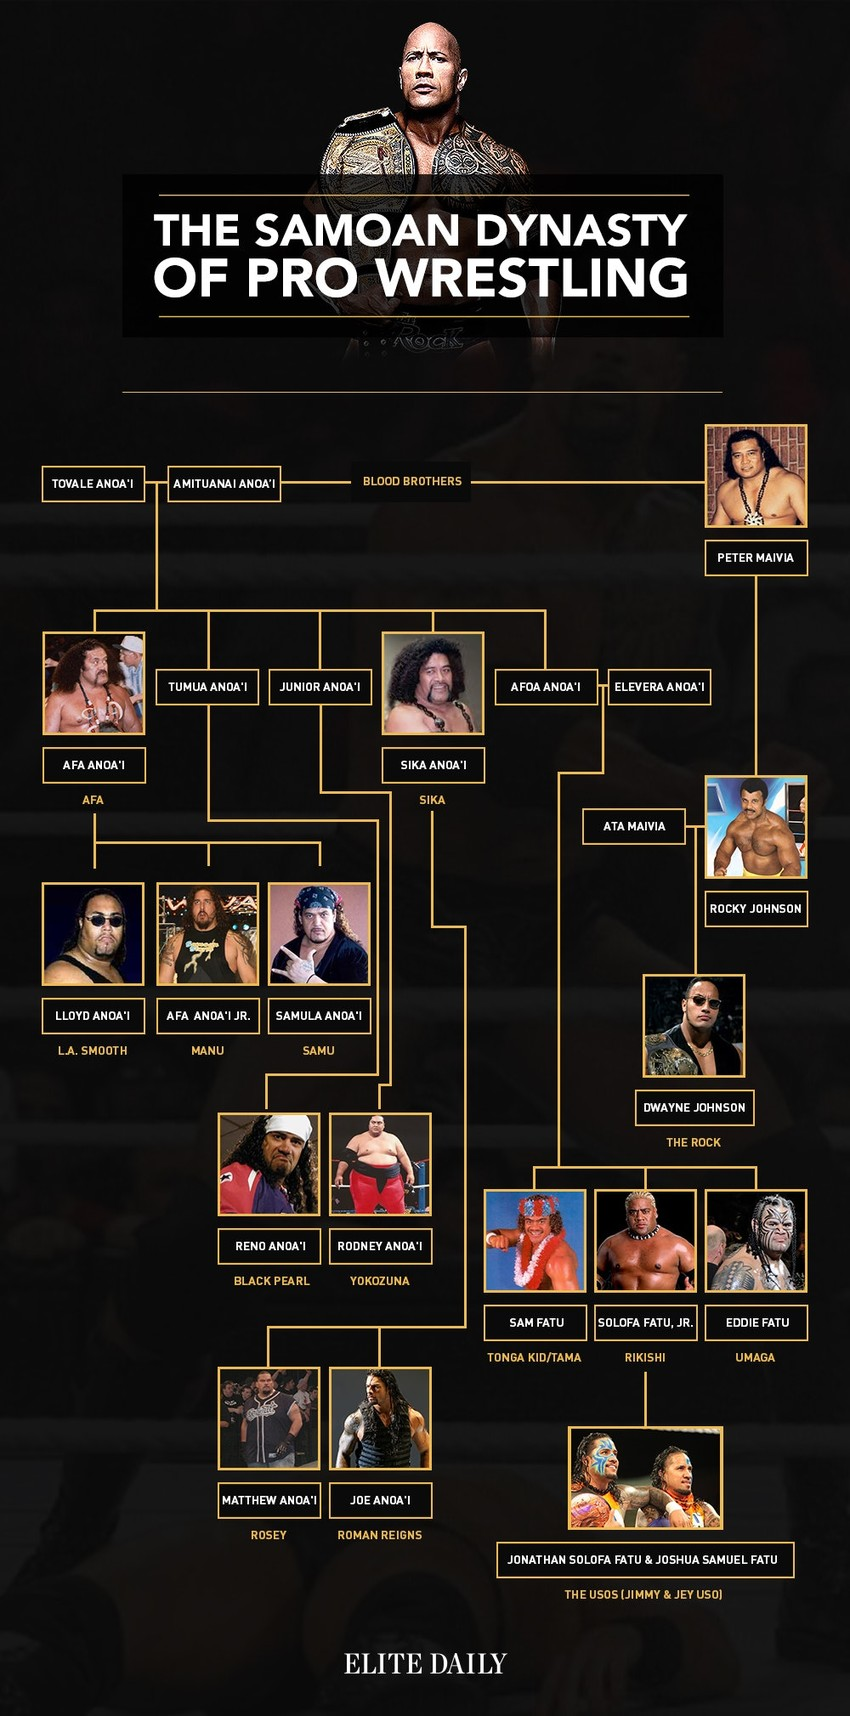 Anoa'i family wrestling dynasty